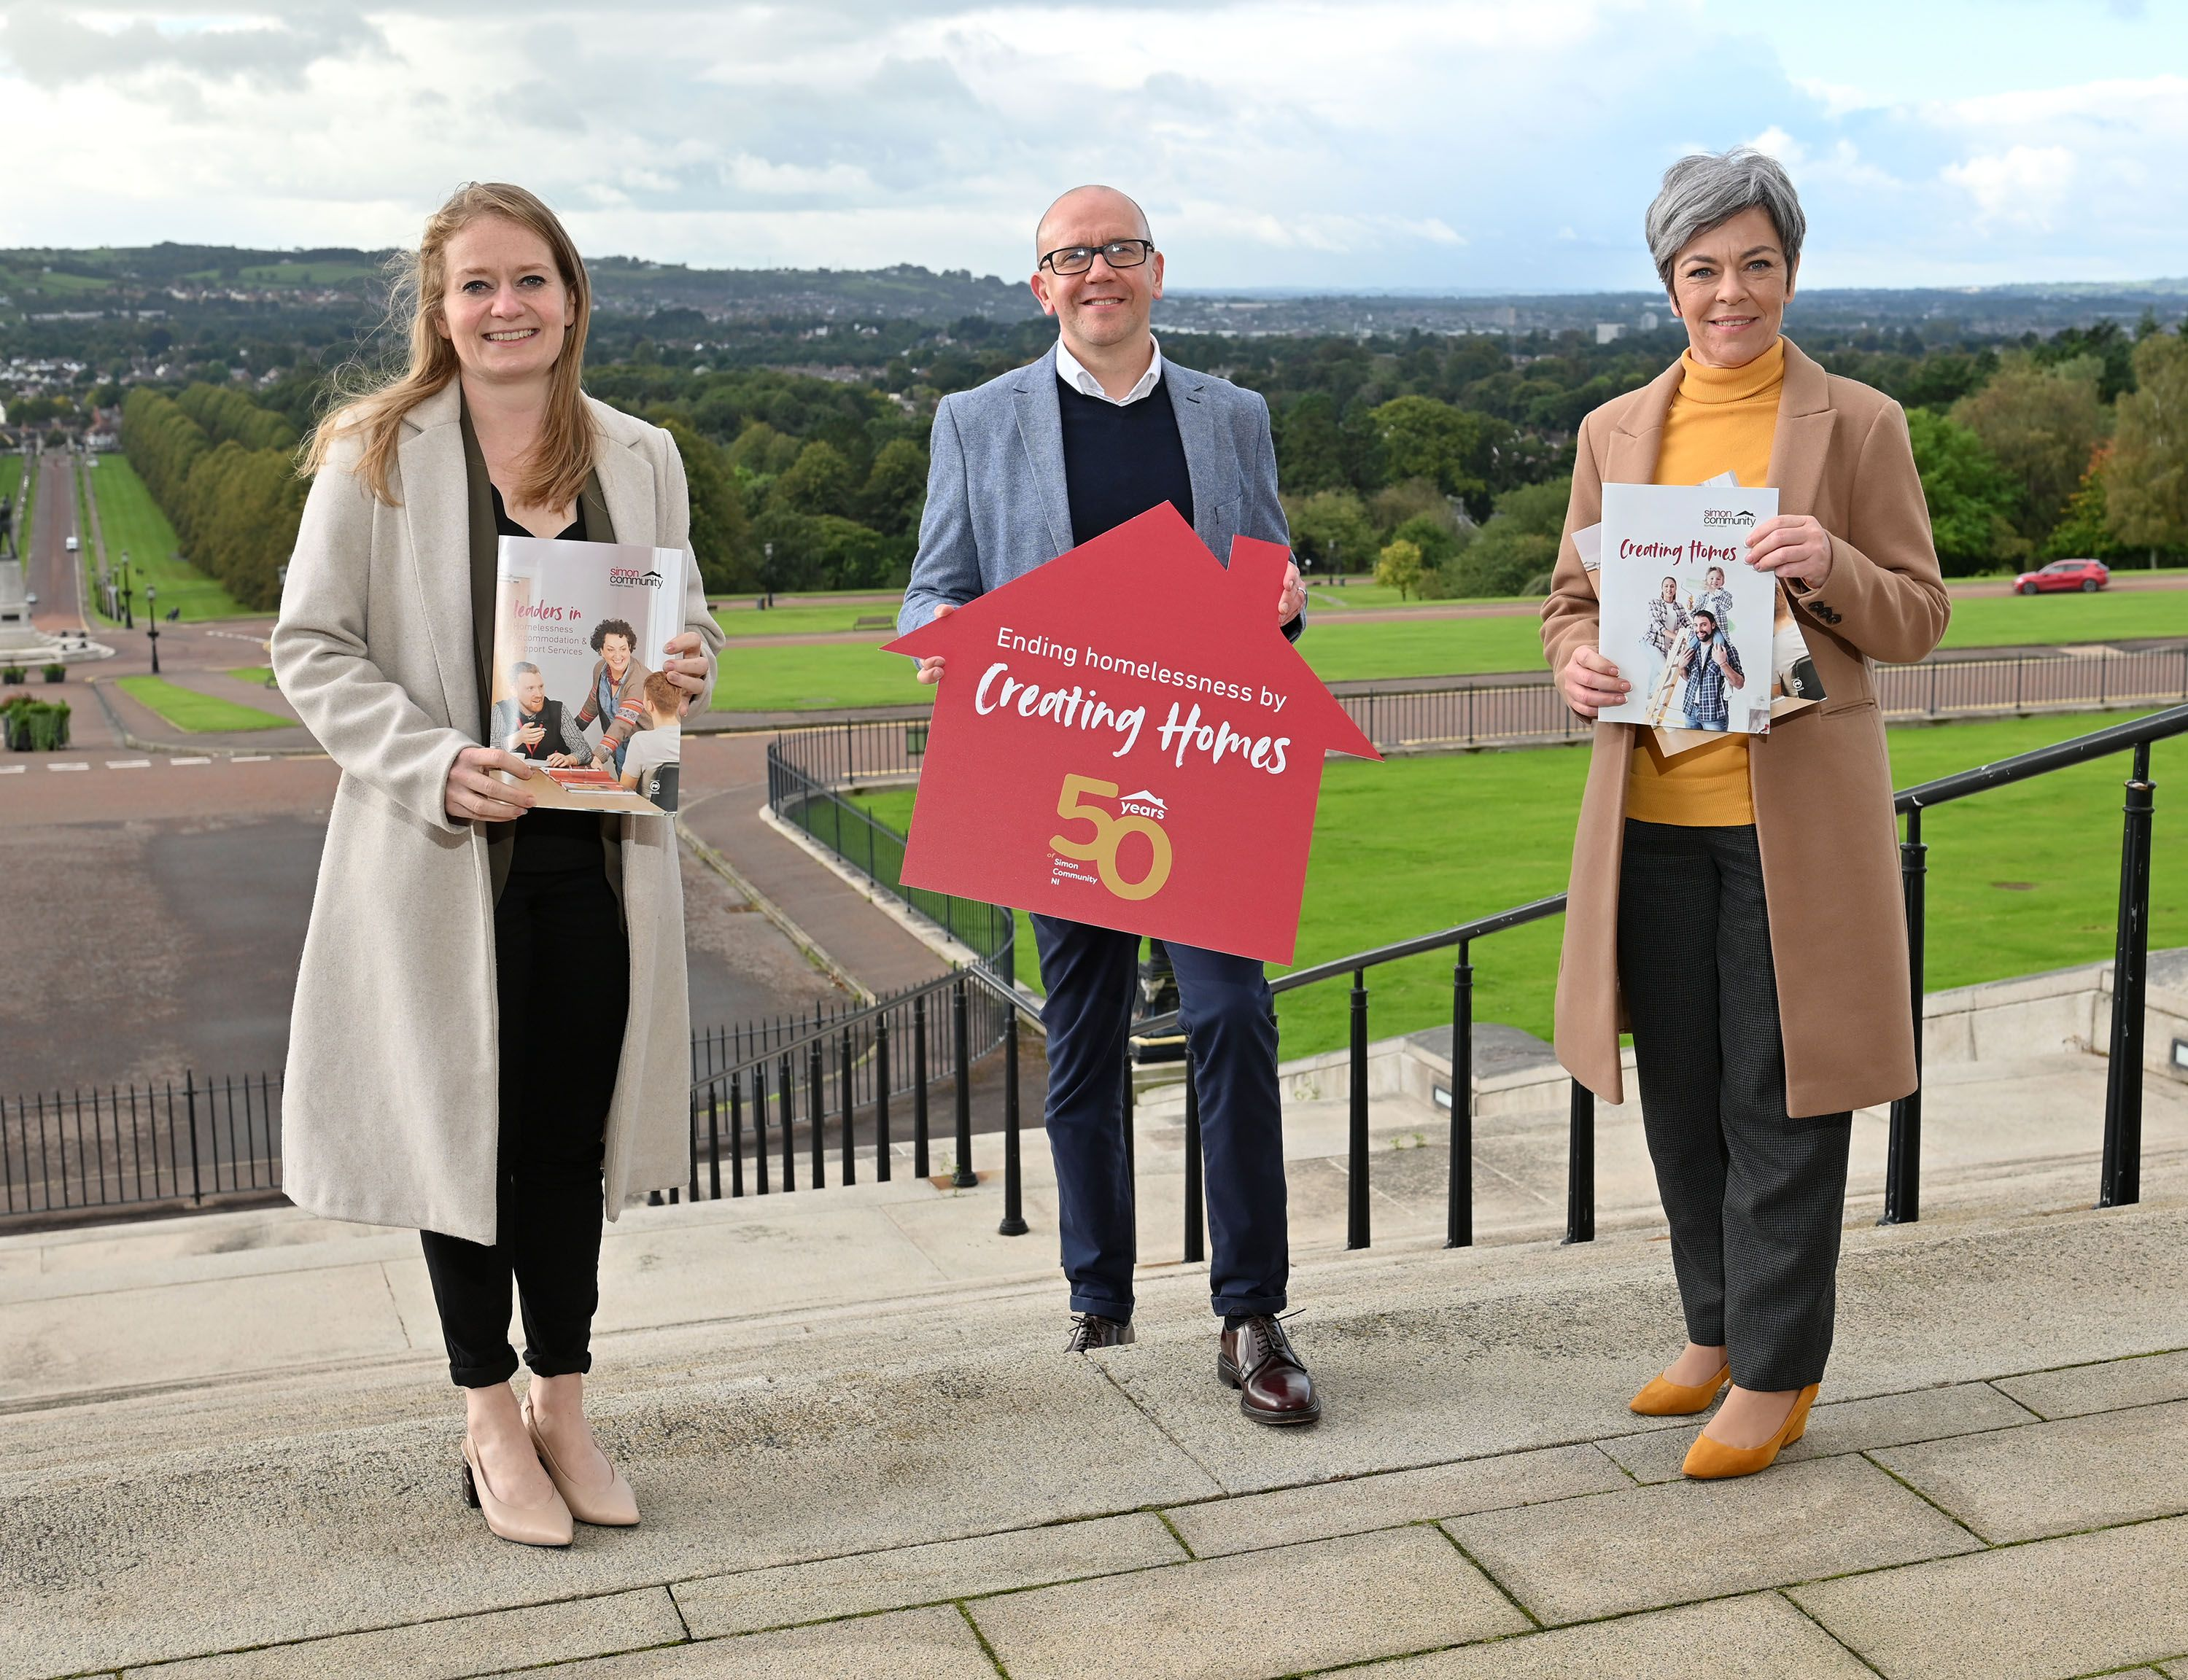 CREATING HOMES: Simon Community Chief Executive Jim Dennison (centre) with South Belfast MLA Clare Bailey and party colleague Rachel Woods MLA